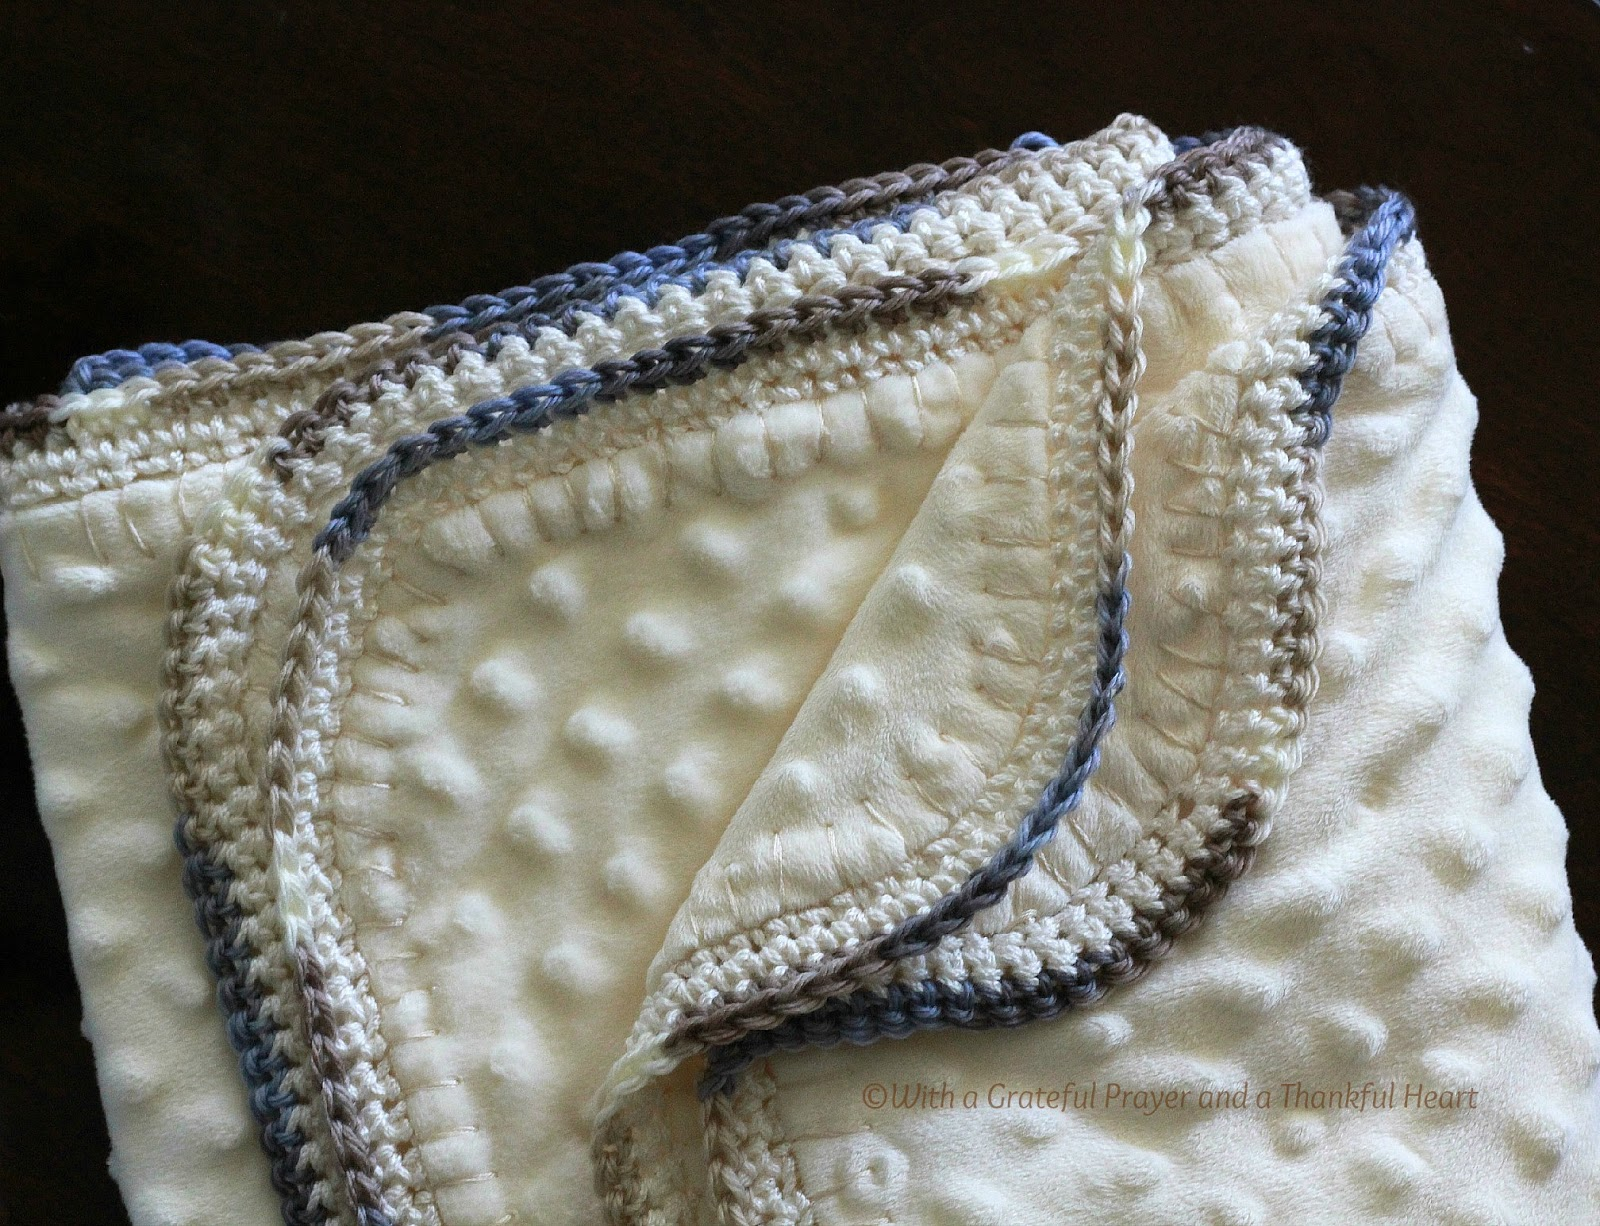 Crocheting Edges On Baby Blankets : With a Grateful Prayer and a Thankful Heart: Crochet Edge Baby Blanket